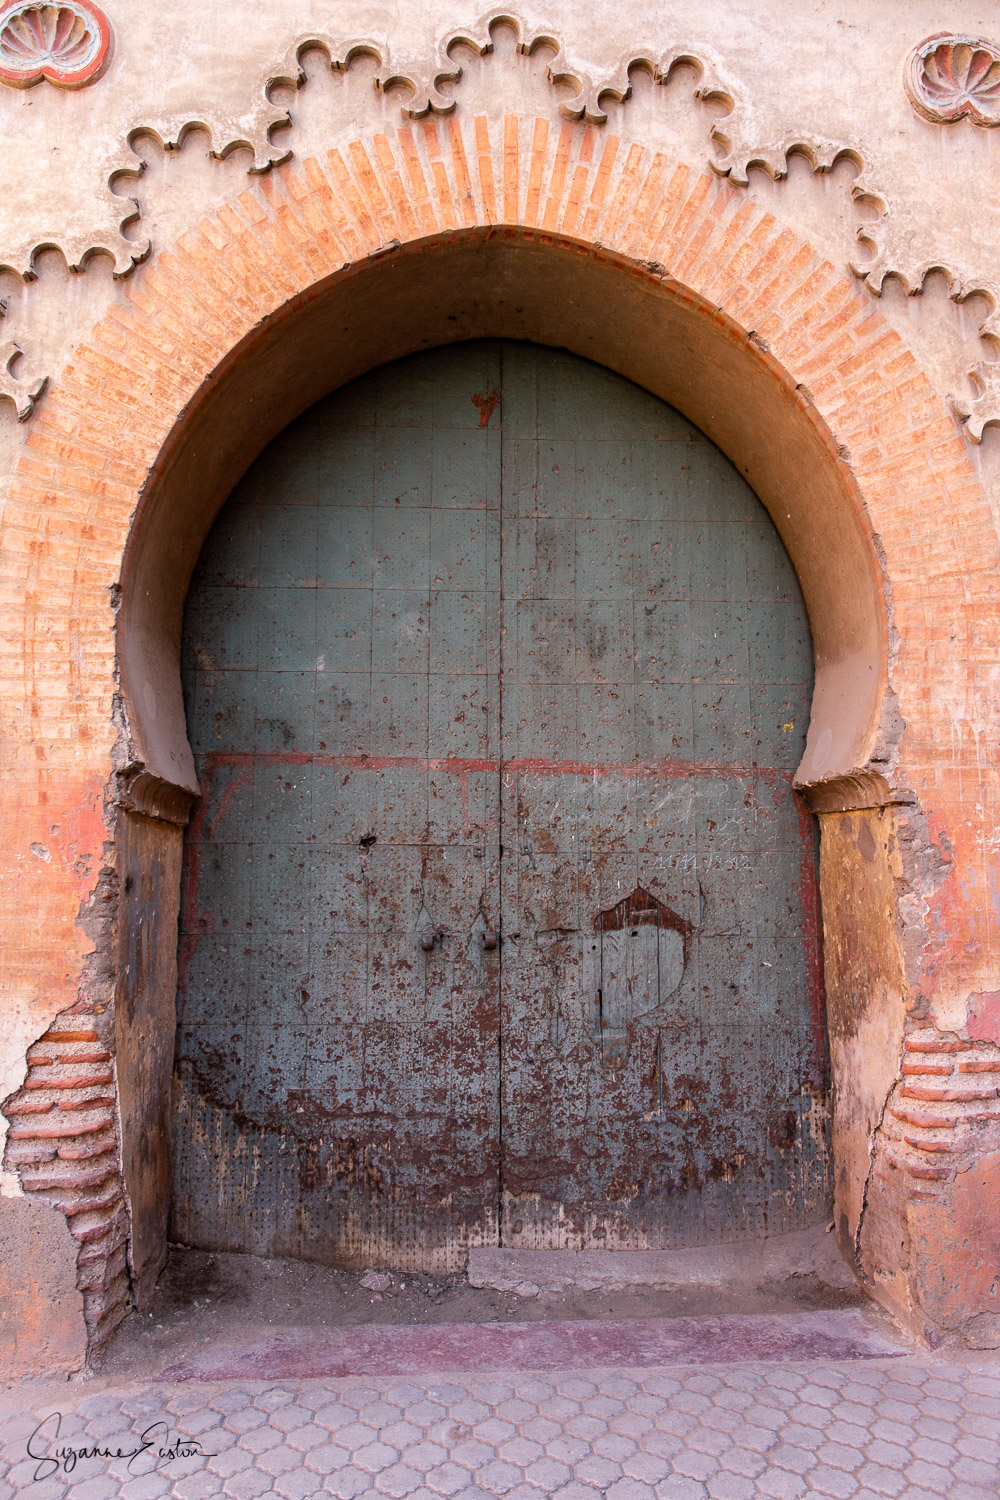 A door on the wall of the El Badii Palace in Marrakech